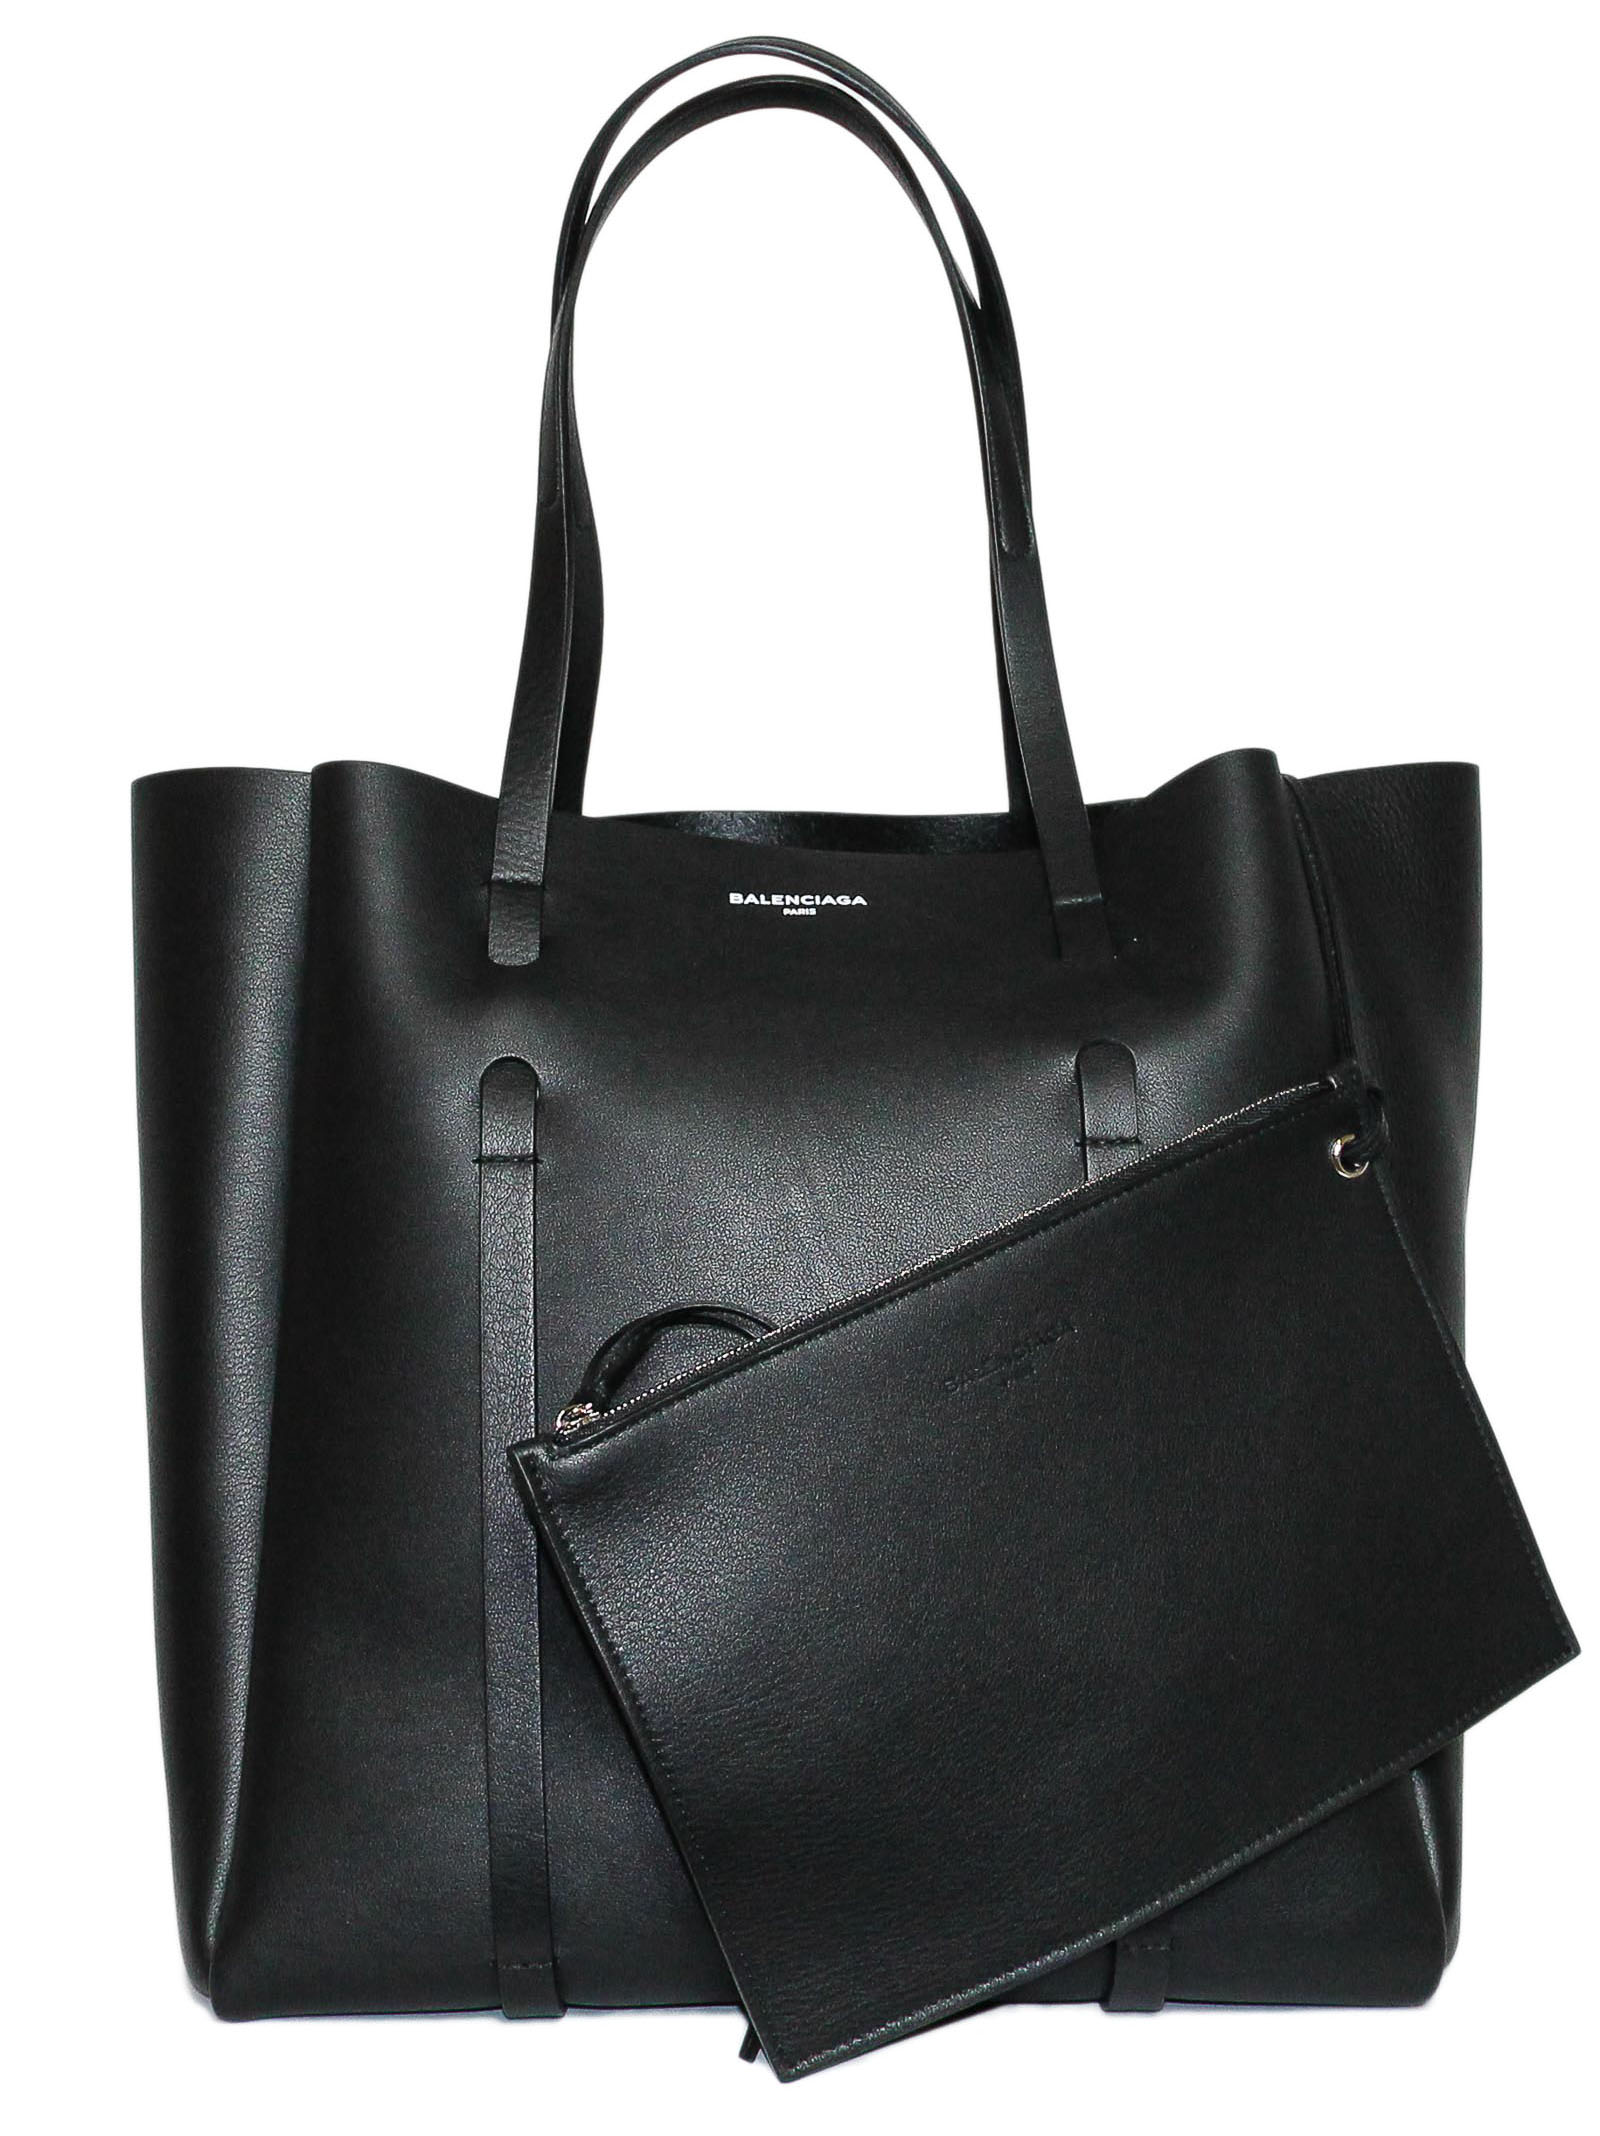 BALENCIAGA EVERYDAY S TOTE BAG